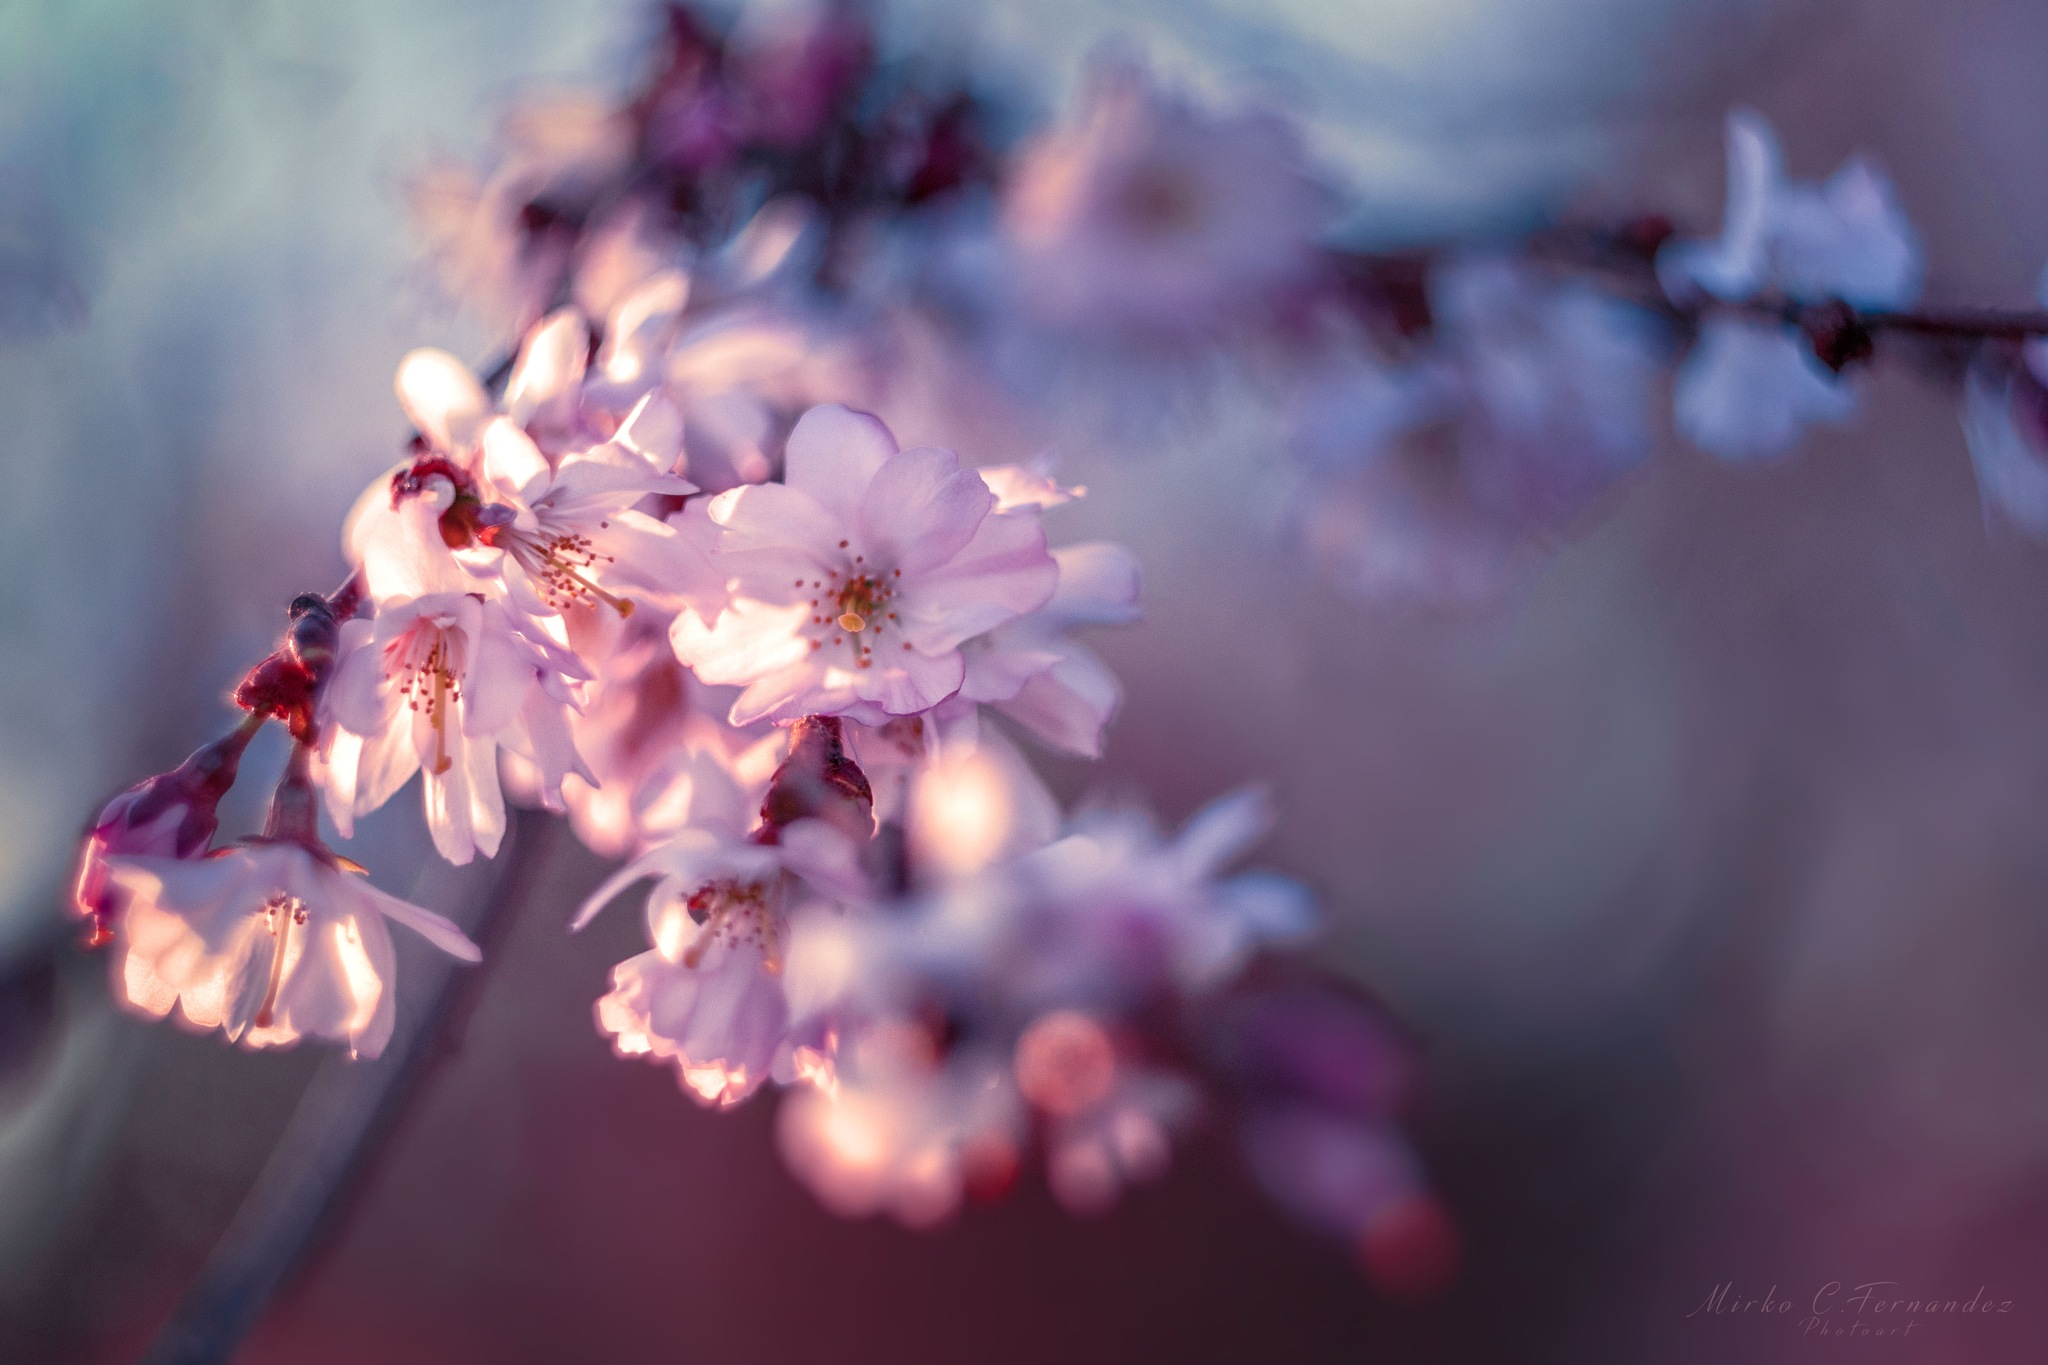 blossom in the sun 2 by Blicklinie